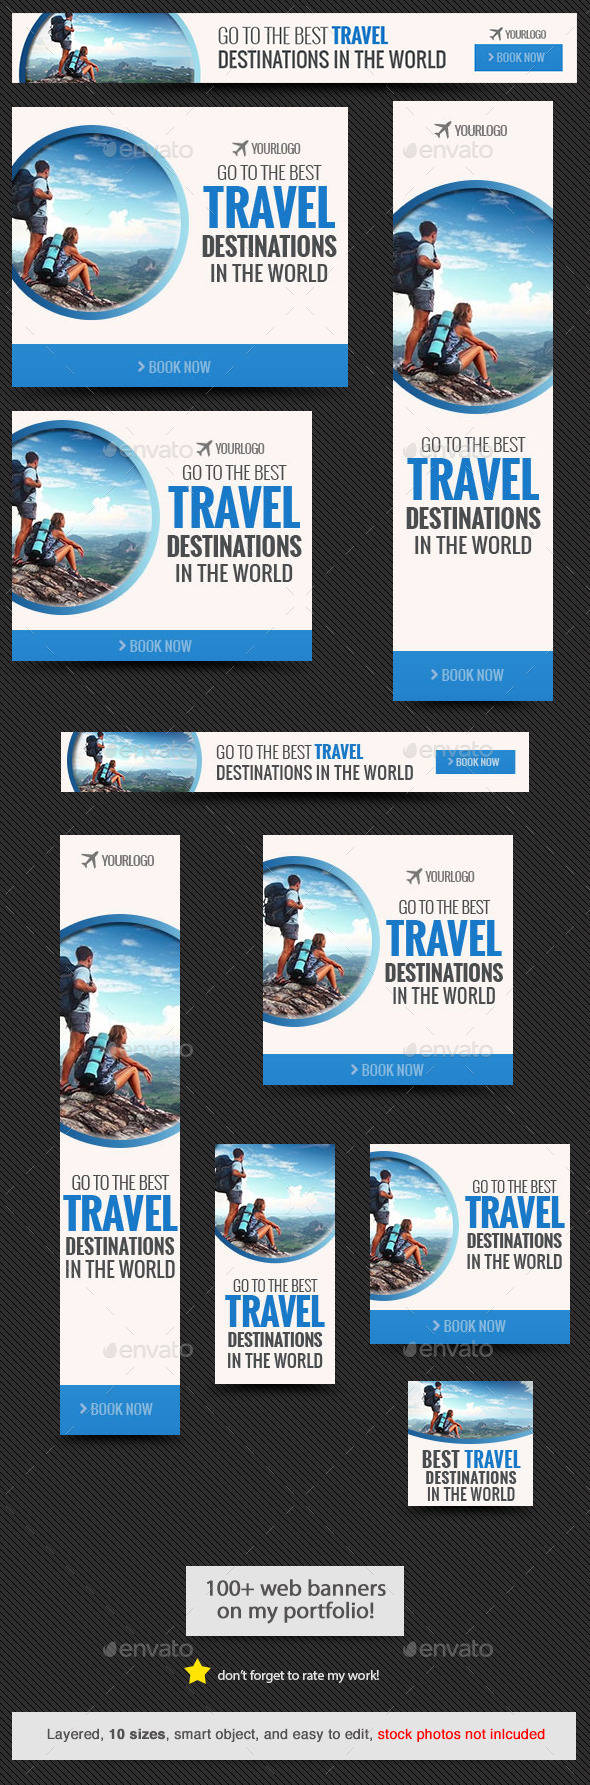 Travel Destination Web Banner Template - Banners & Ads Web Elements